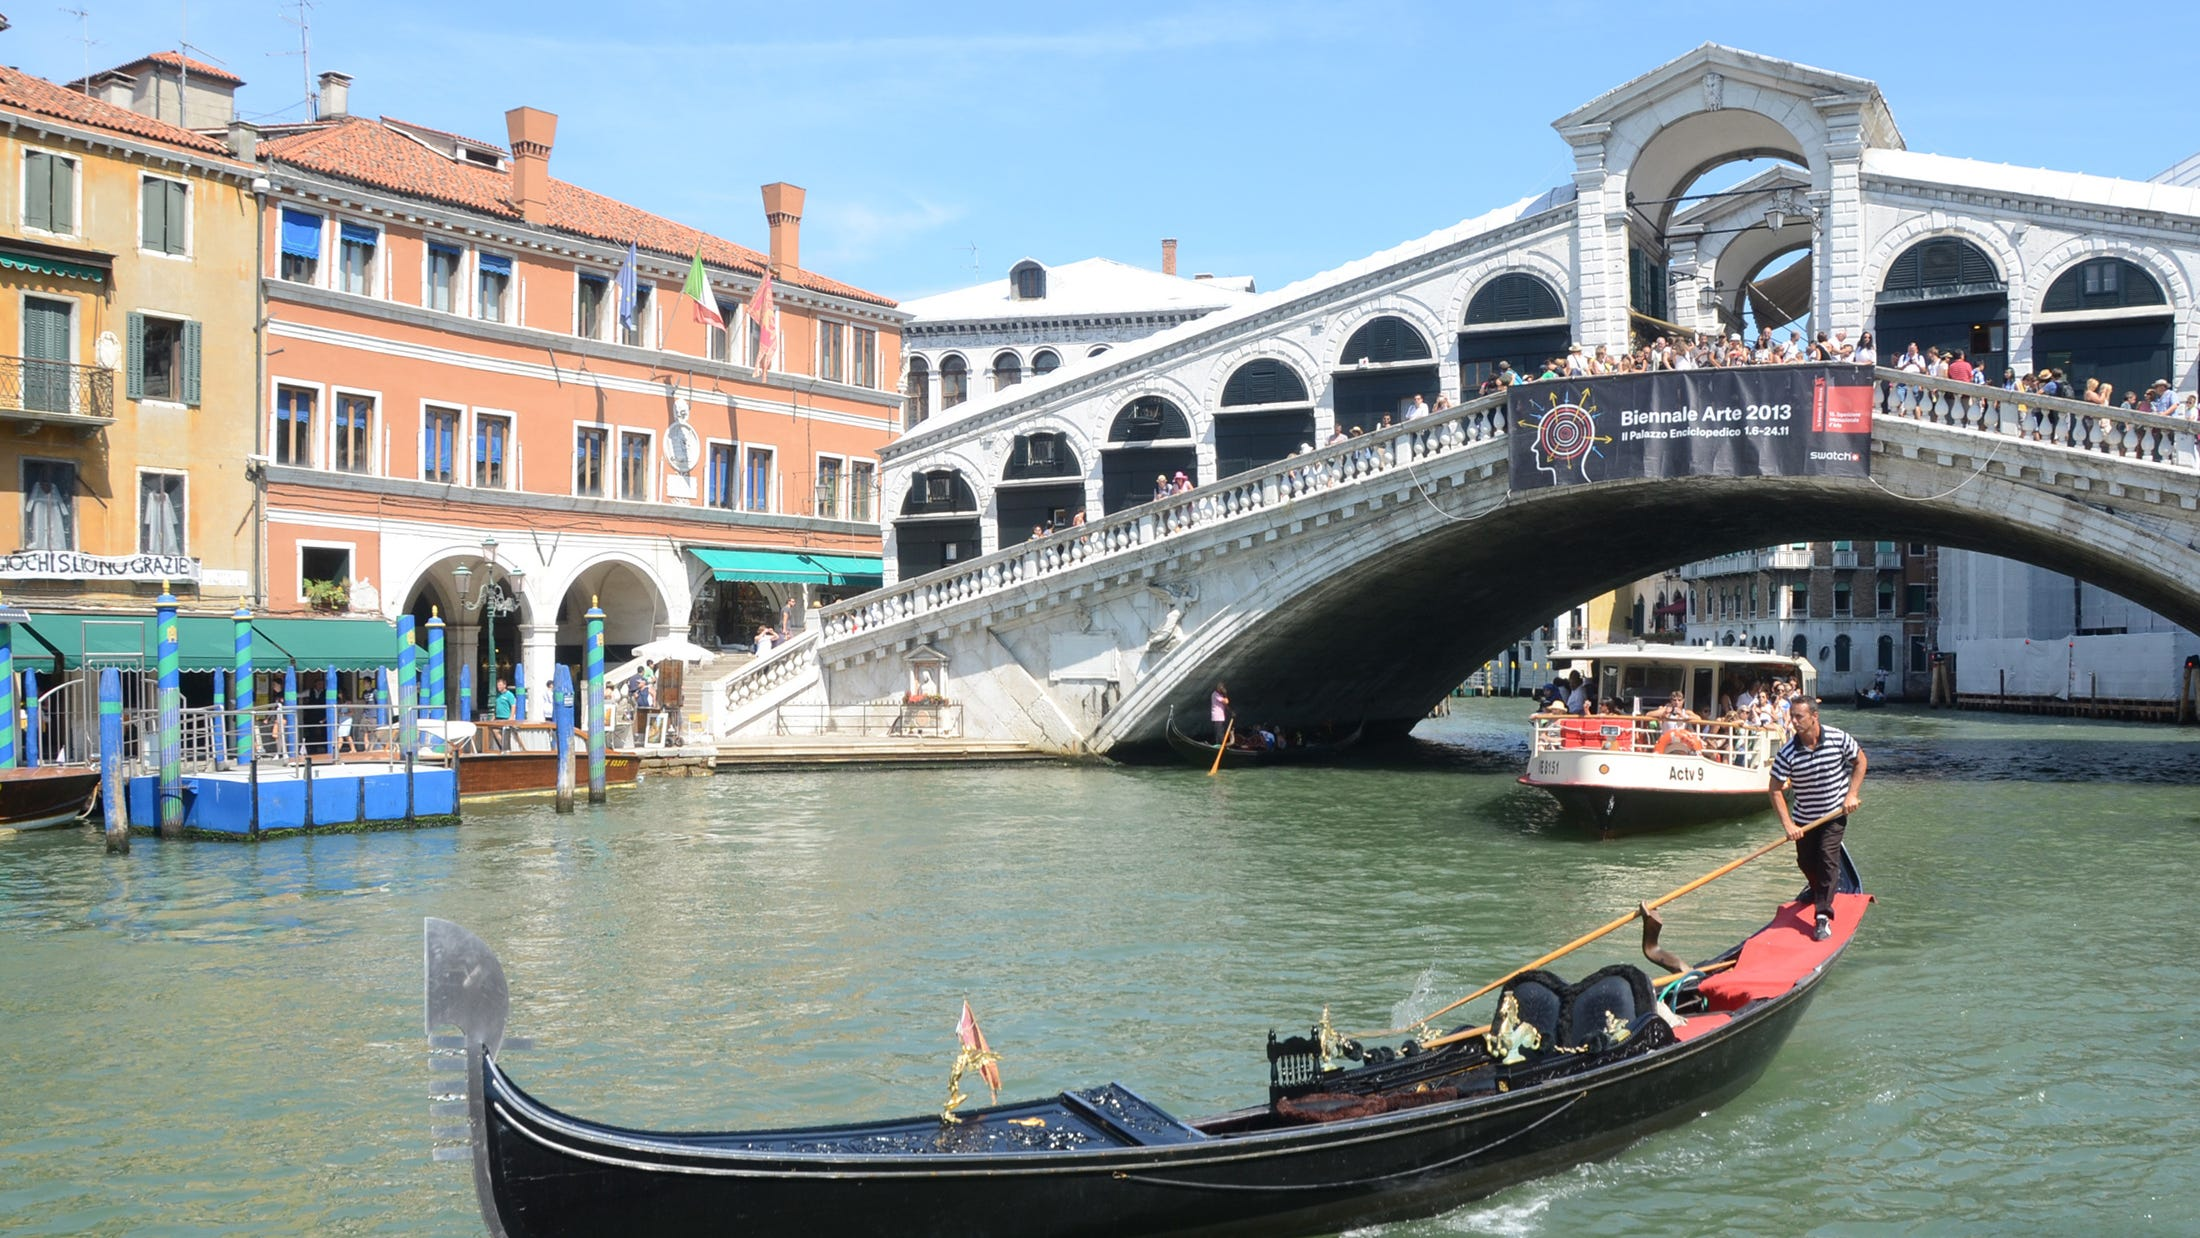 A gondola plies the waters of Venice's Grand Canal, Italy on Aug. 17, 2013.